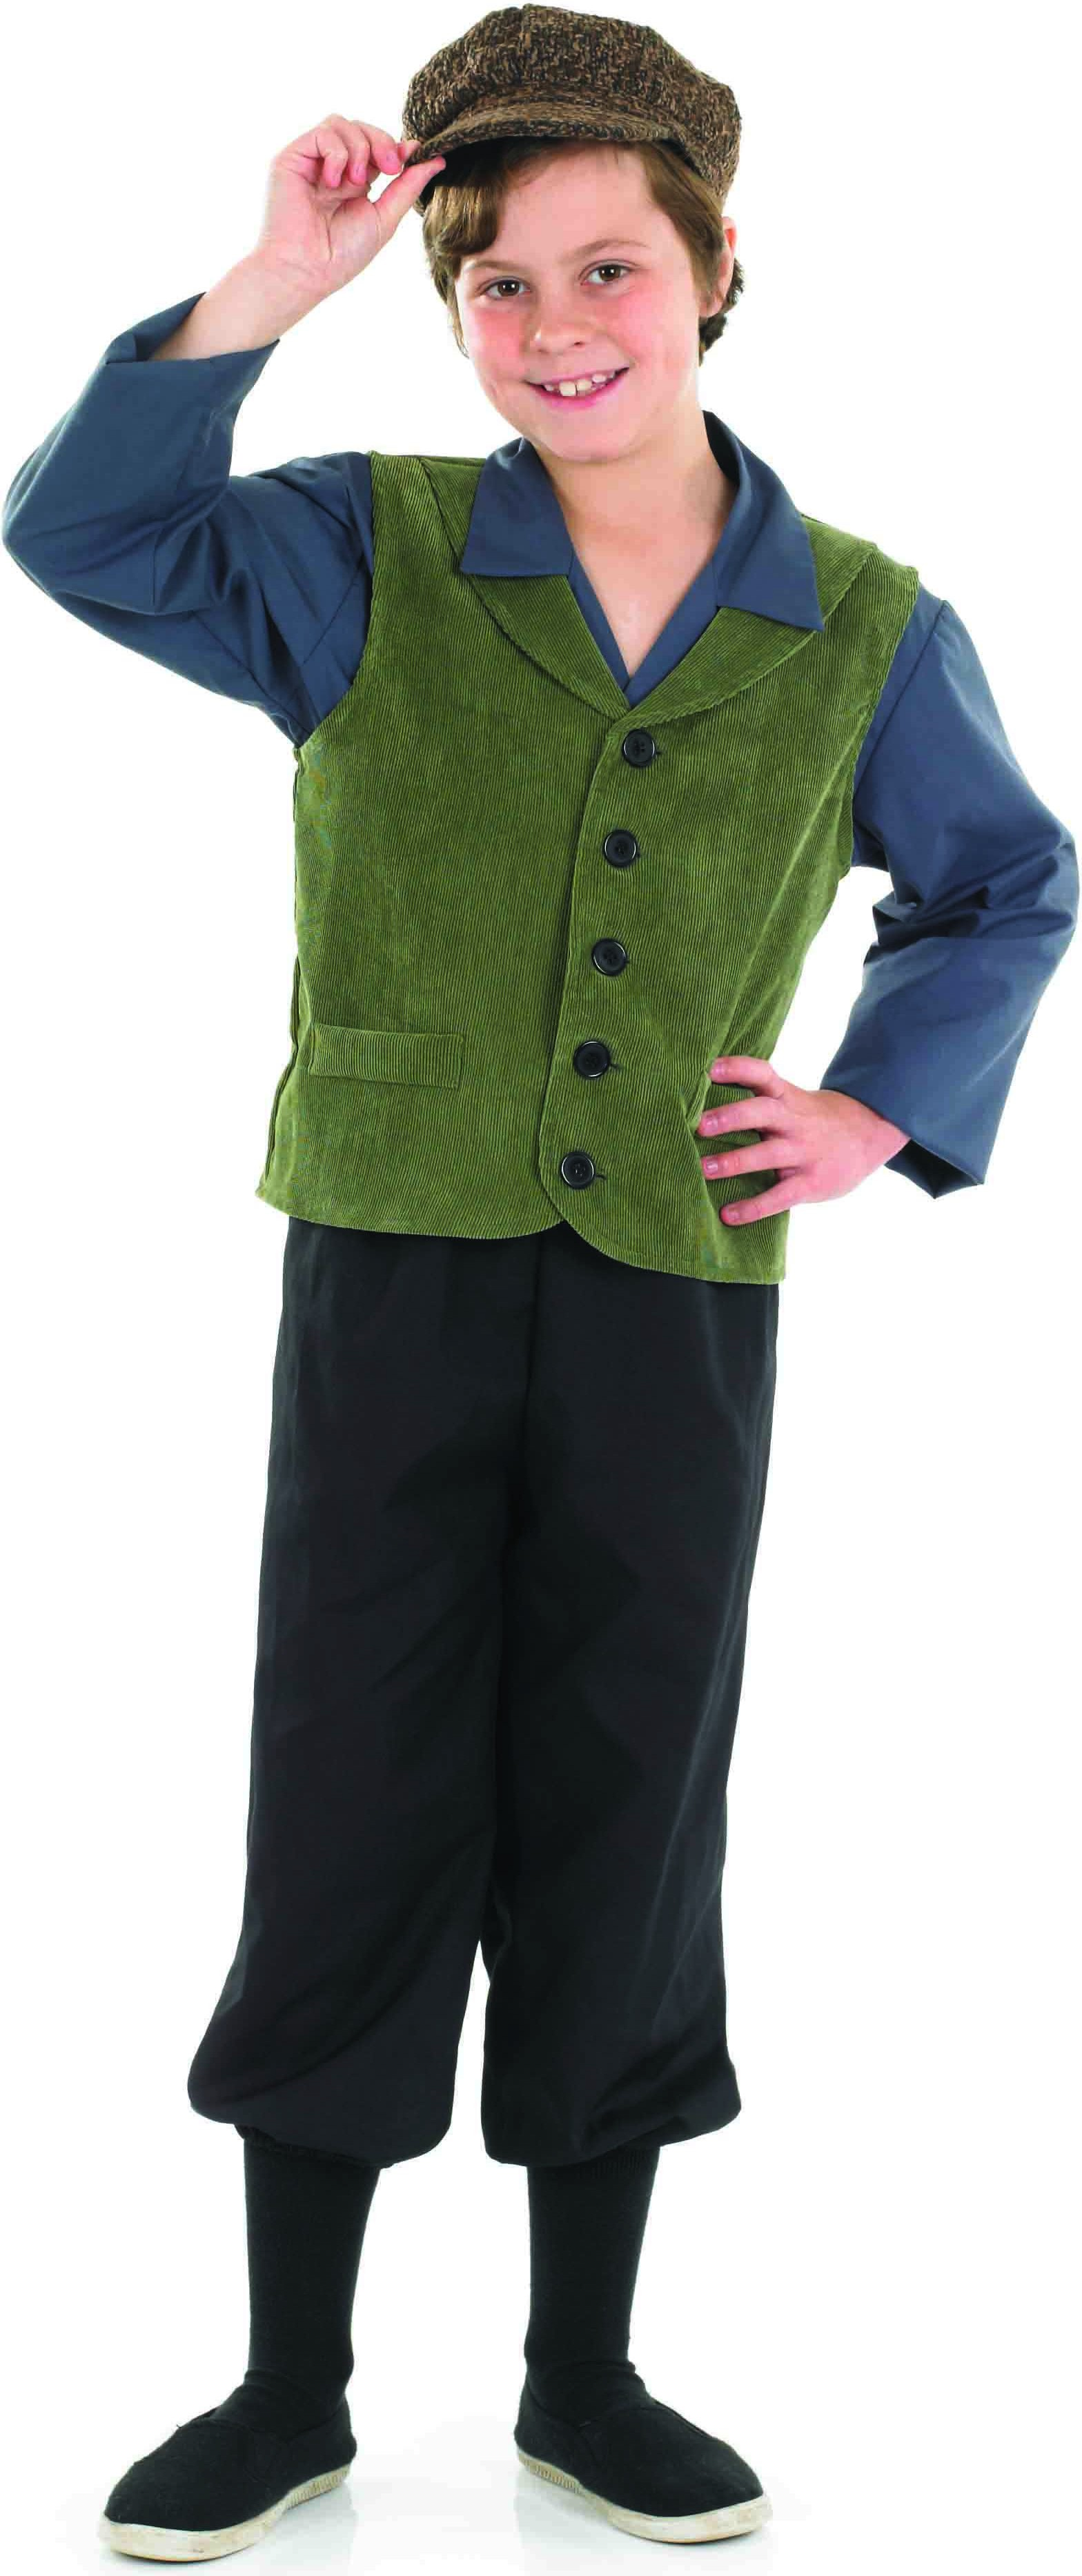 Boys Victorian School Boy Victorian Outfit - (Green, Blue, Grey)